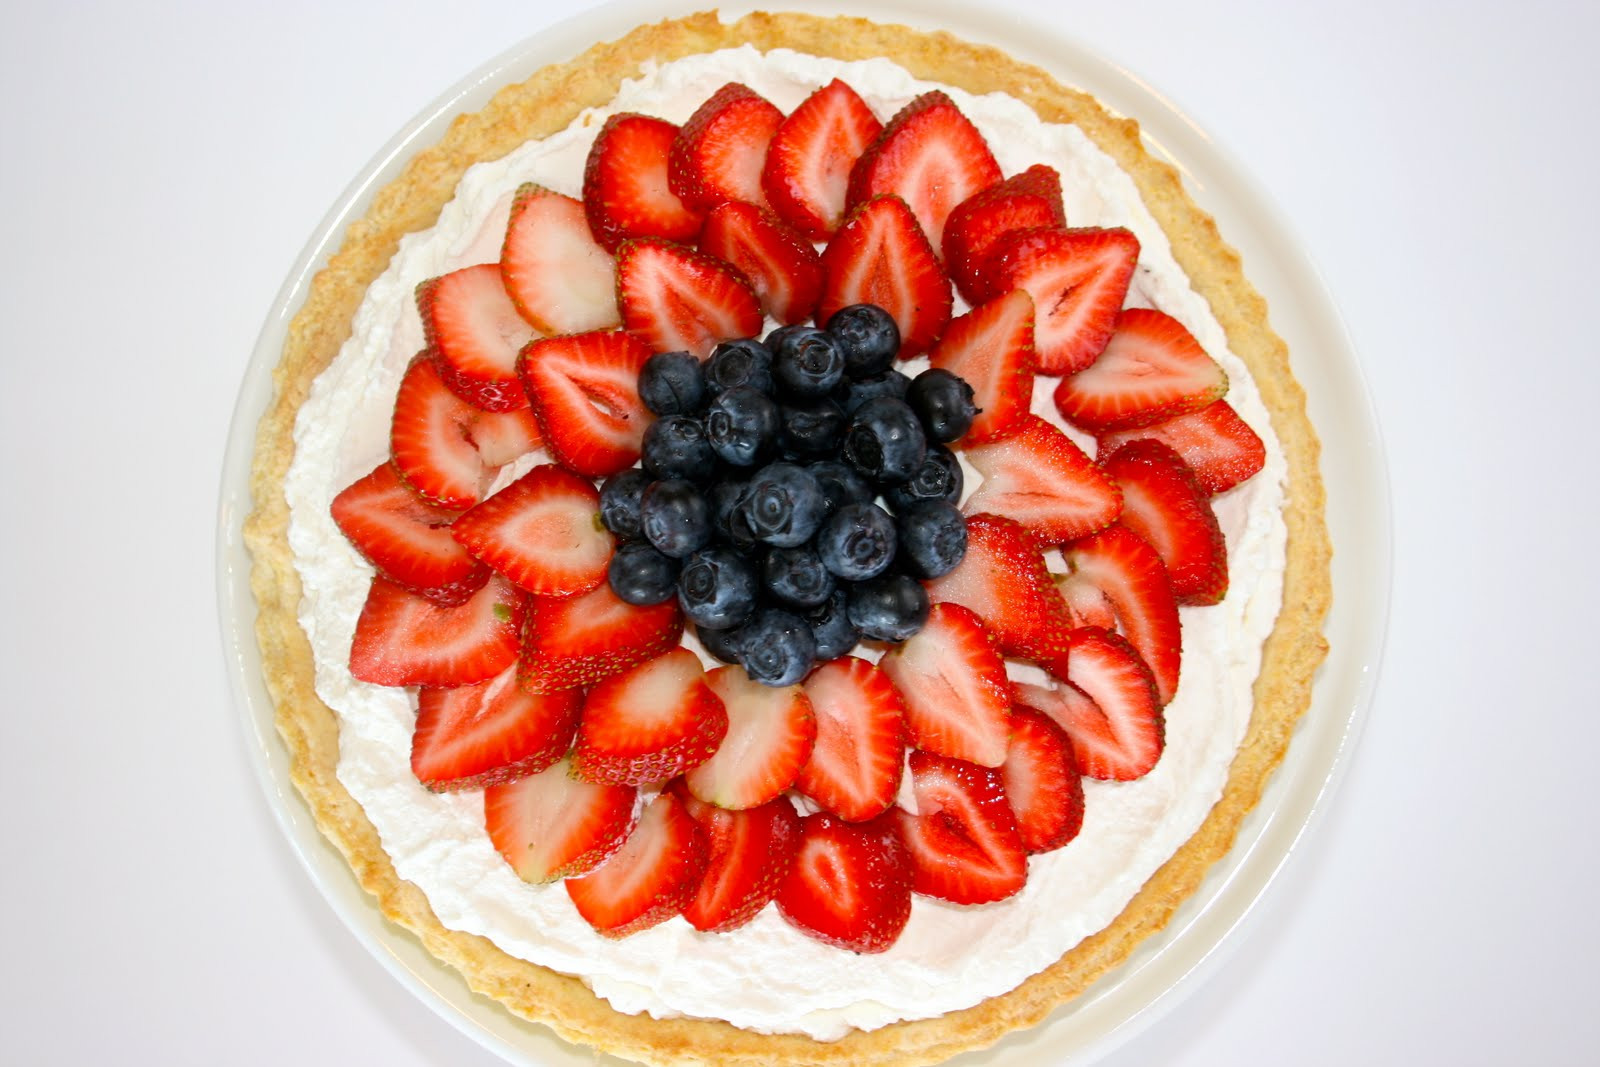 ... strawberry blueberry tart 1 by this tart is very creamy and strawberry